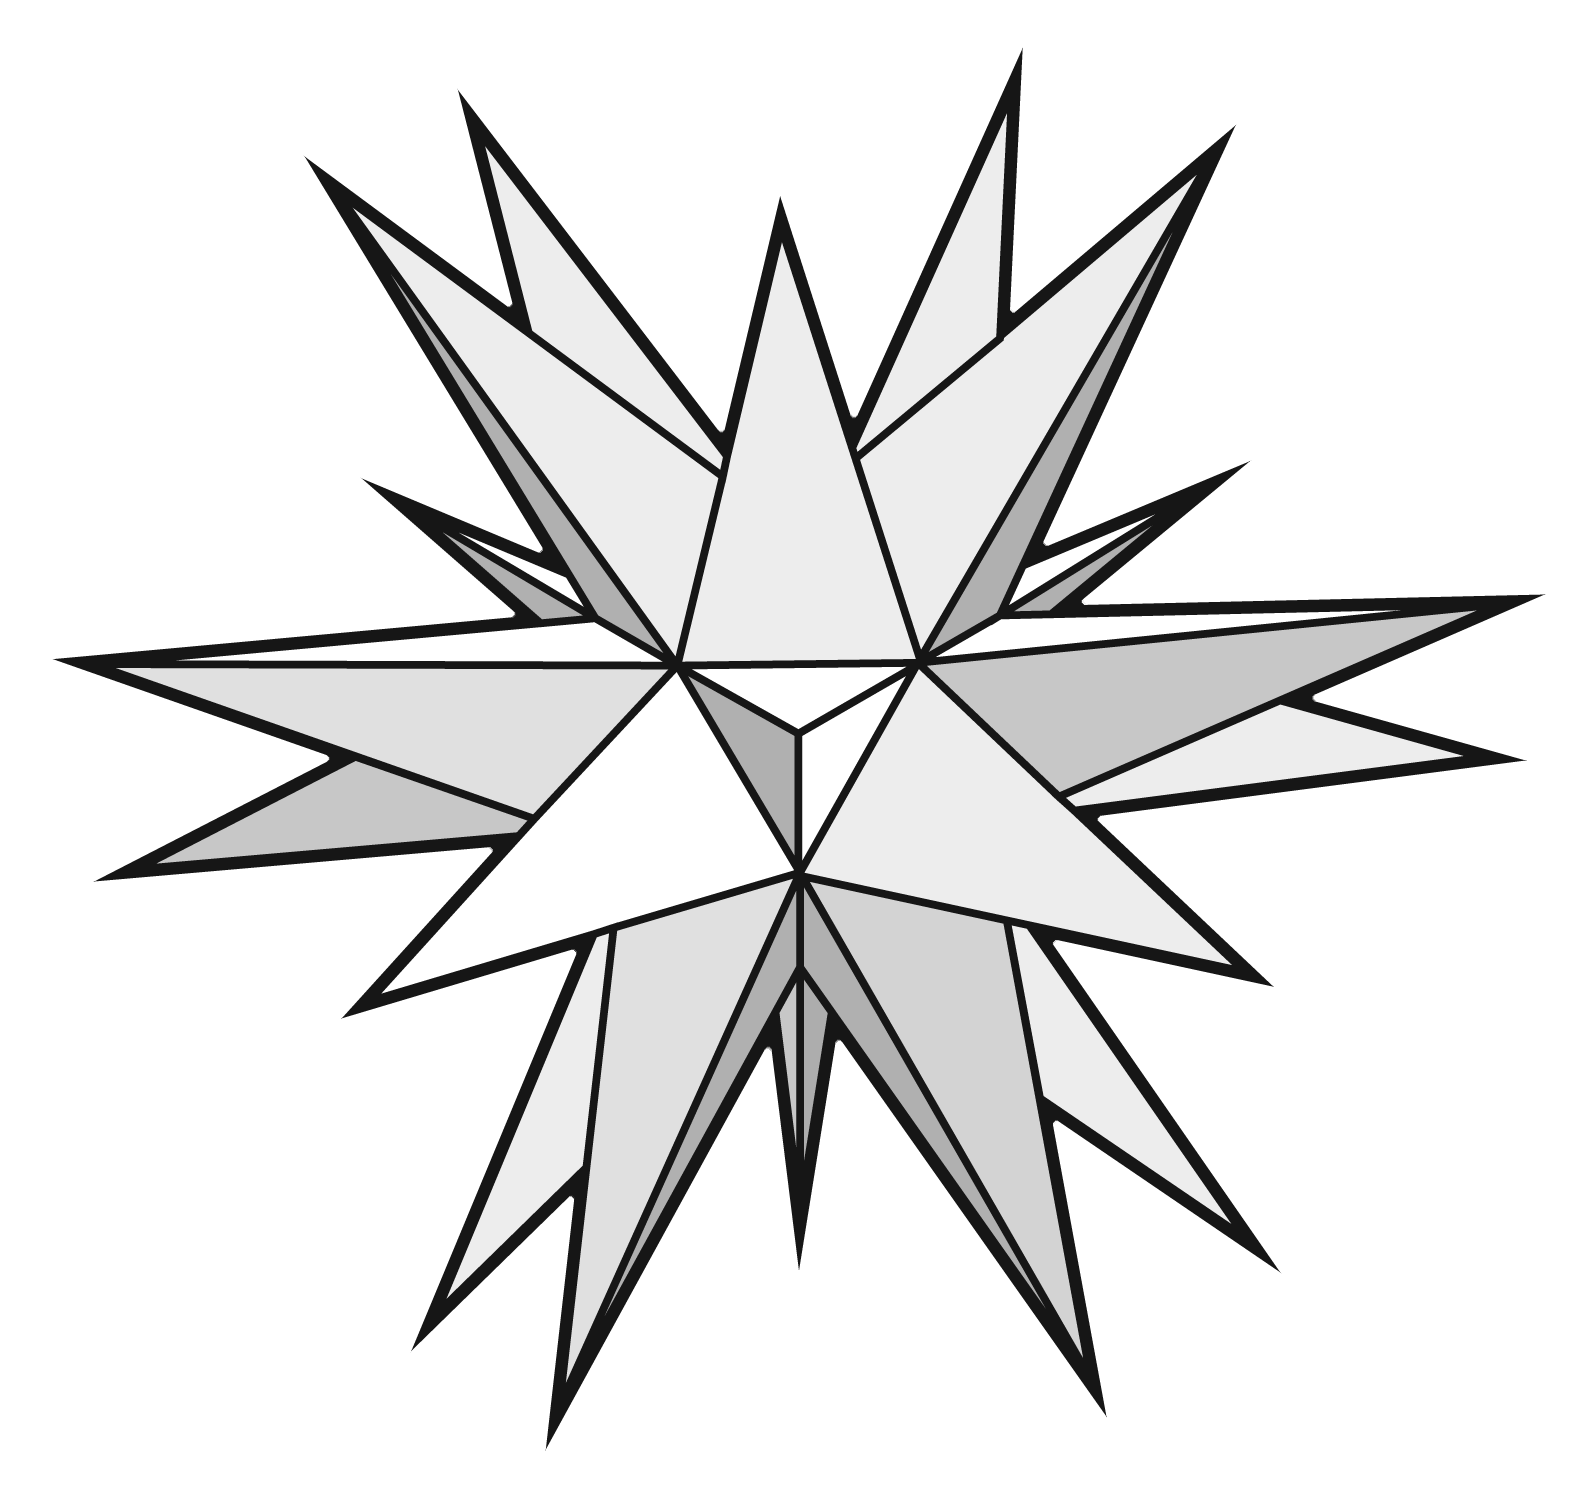 3d Star Drawing at GetDrawings.com | Free for personal use 3d Star ...